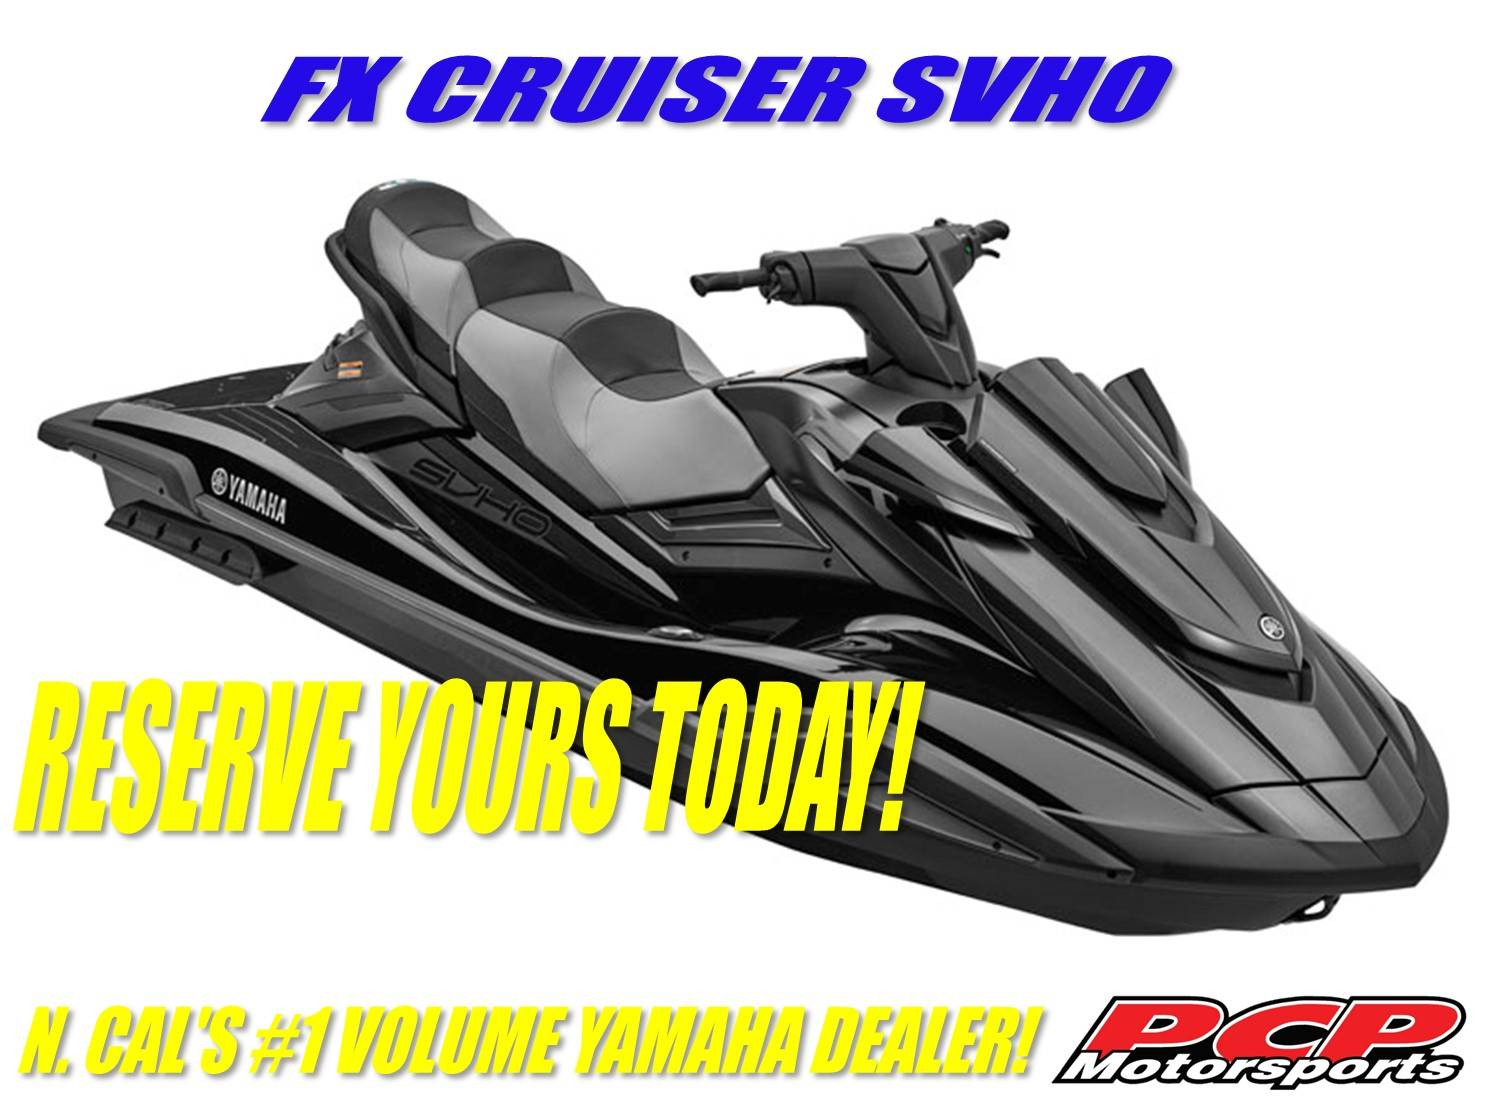 2021 Yamaha FX Cruiser SVHO in Sacramento, California - Photo 1